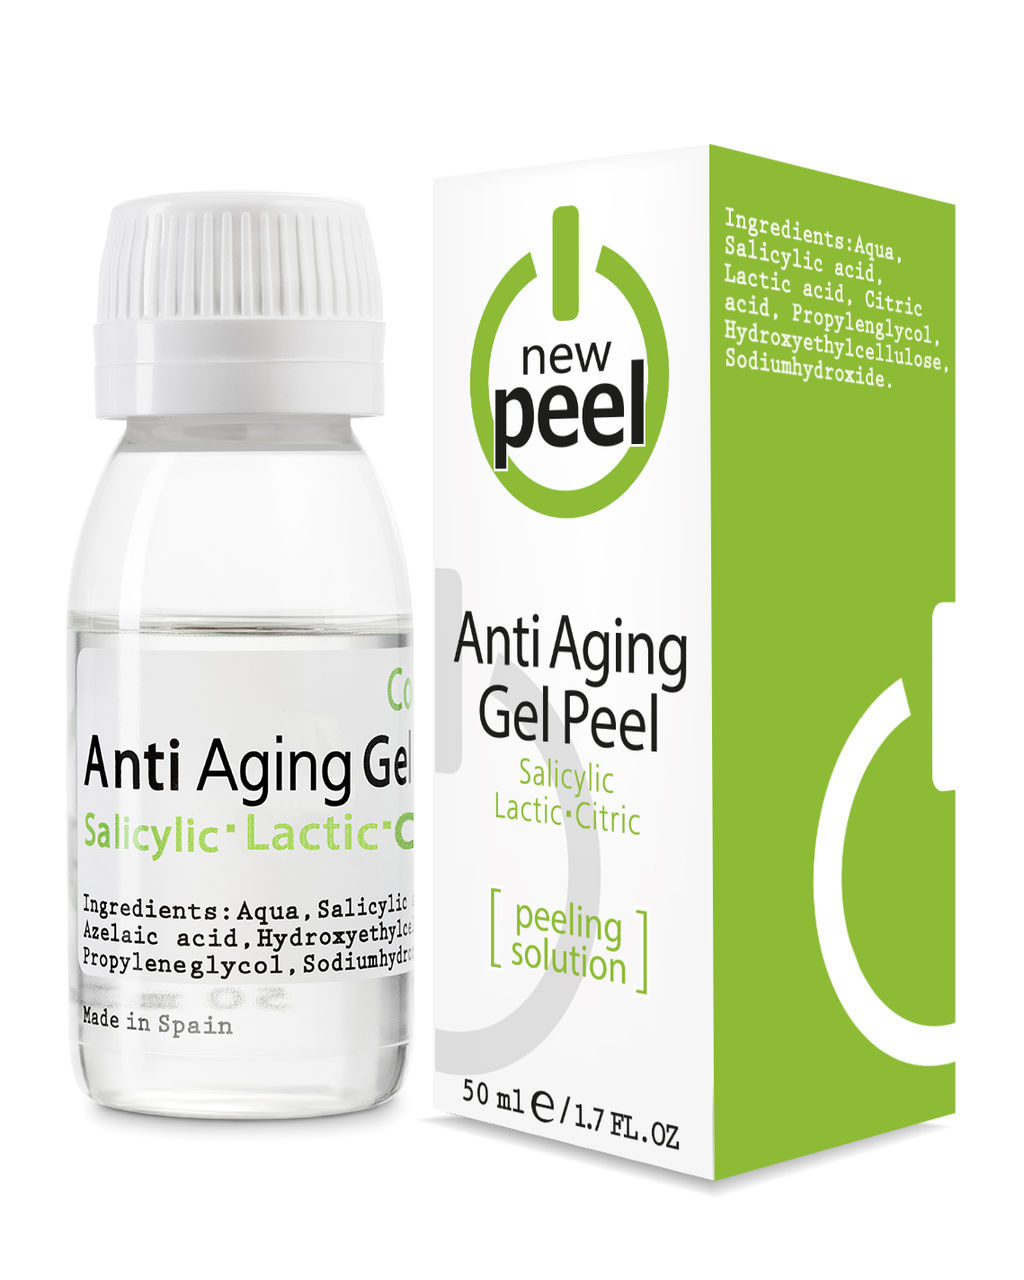 Модифицированный пилинг джесснера / NEW PEEL Anti-Aging Peel, 50 ml